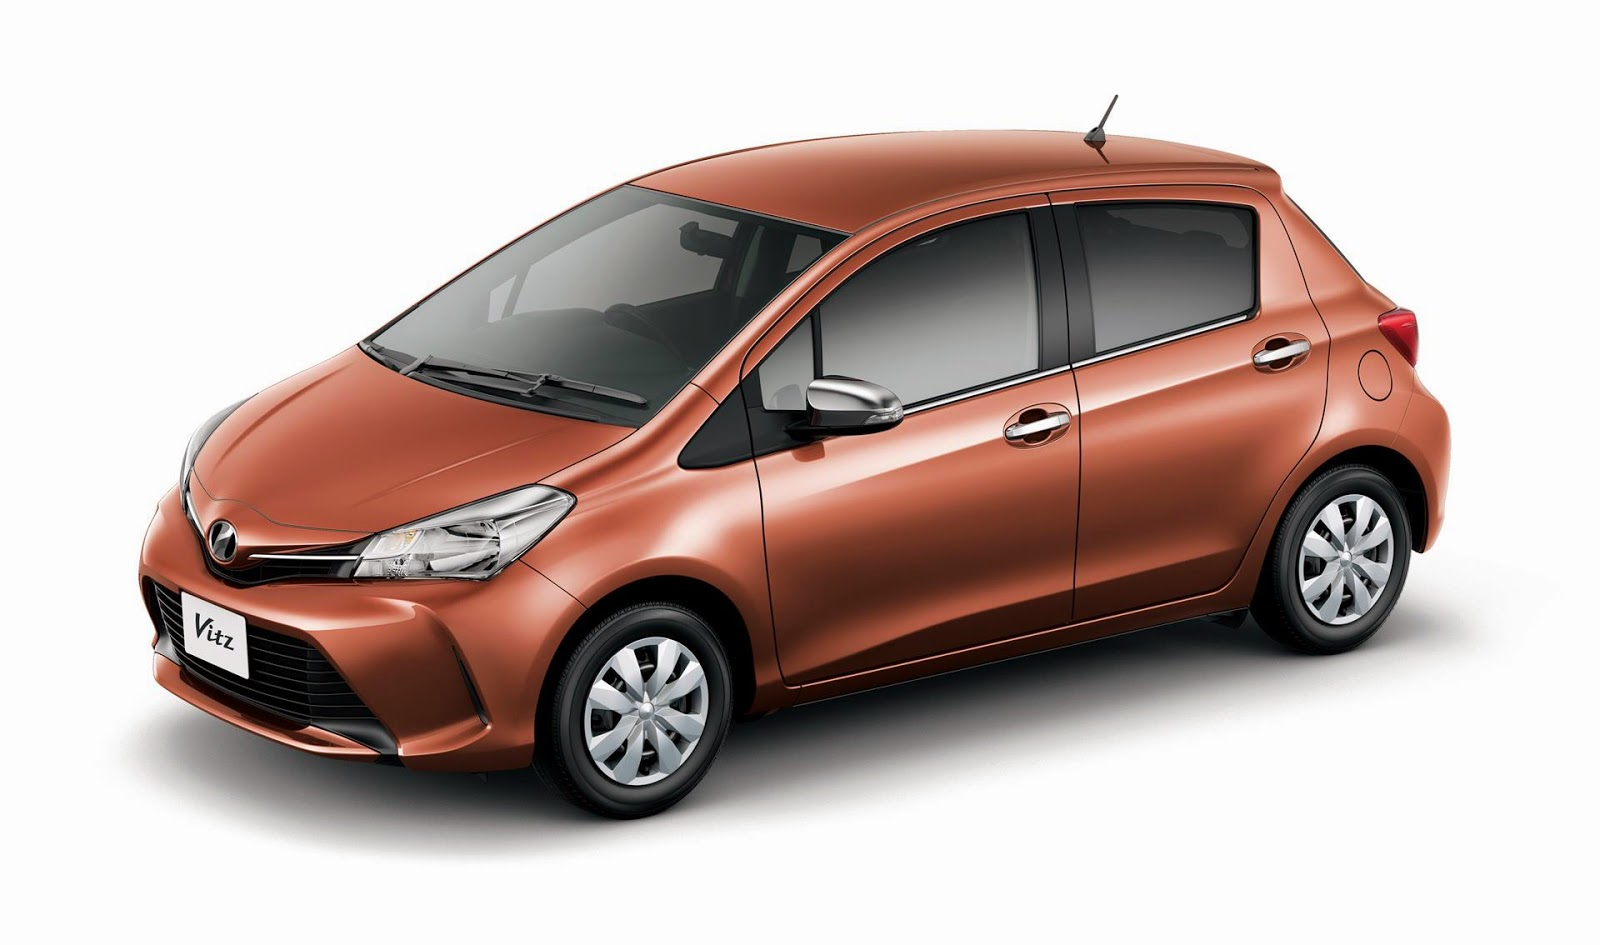 Orange Toyota Vitz